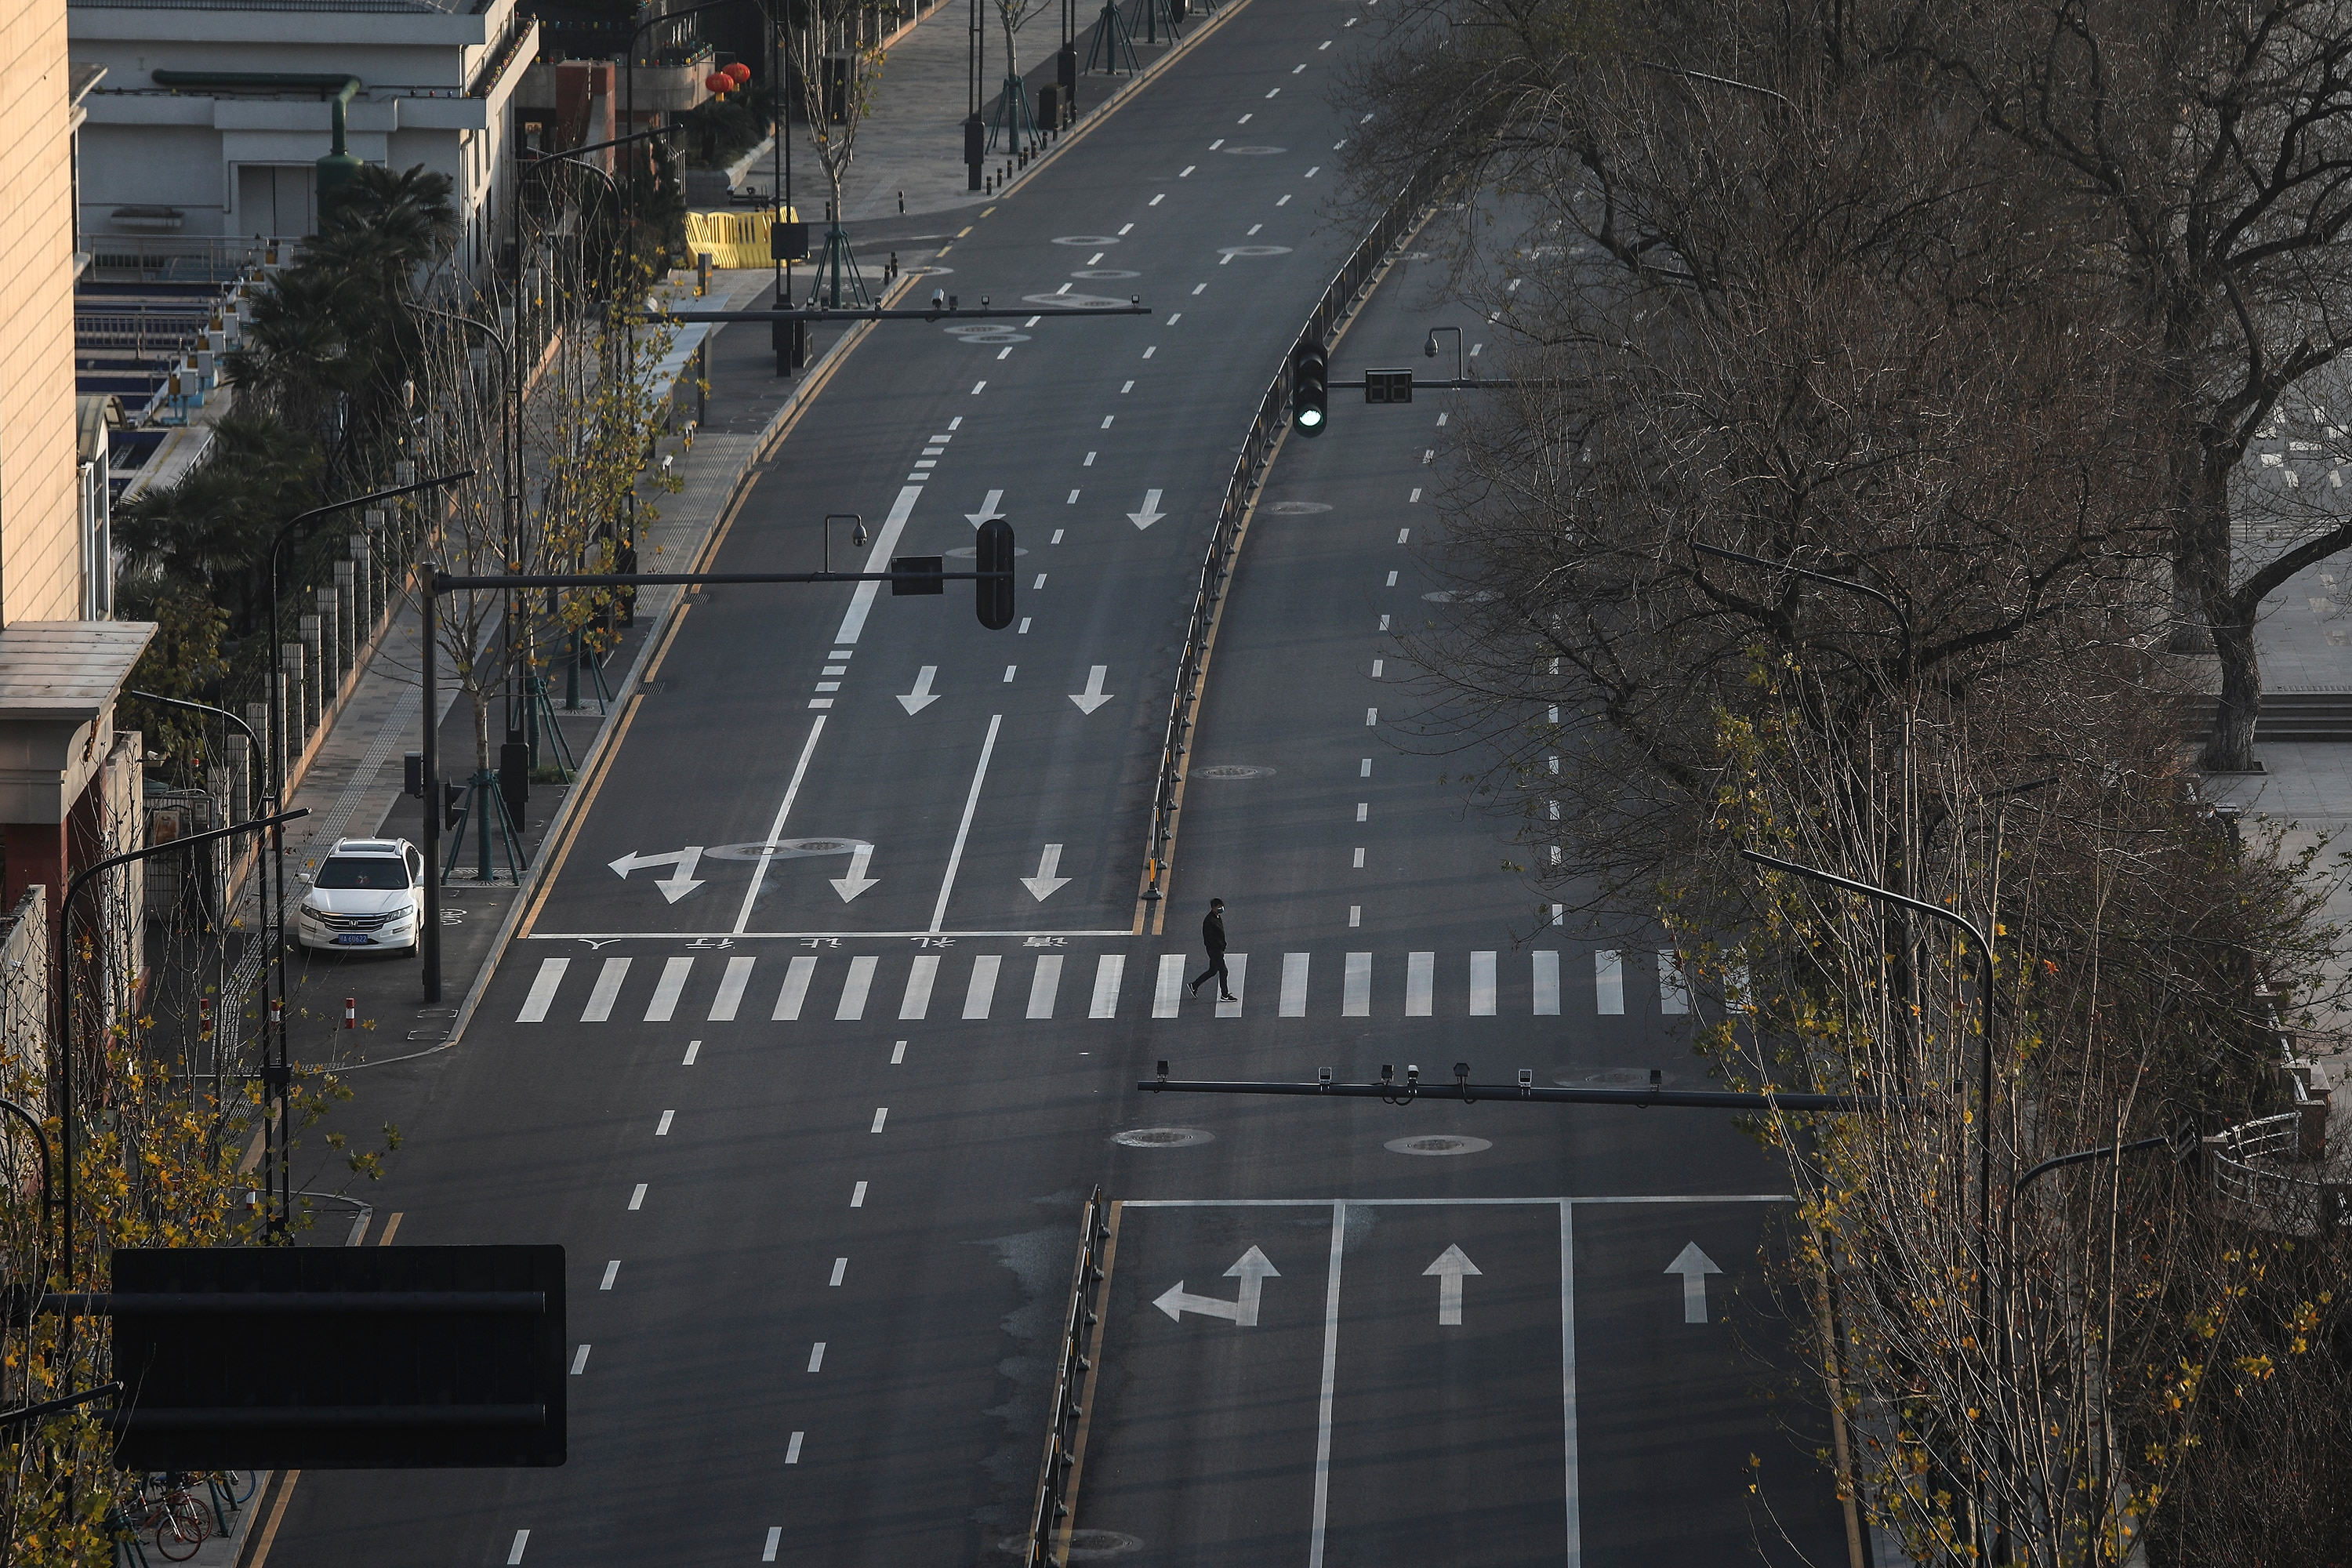 The streets of Wuhan fall silent during a lockdown in the wake of the coronavirus outbreak.